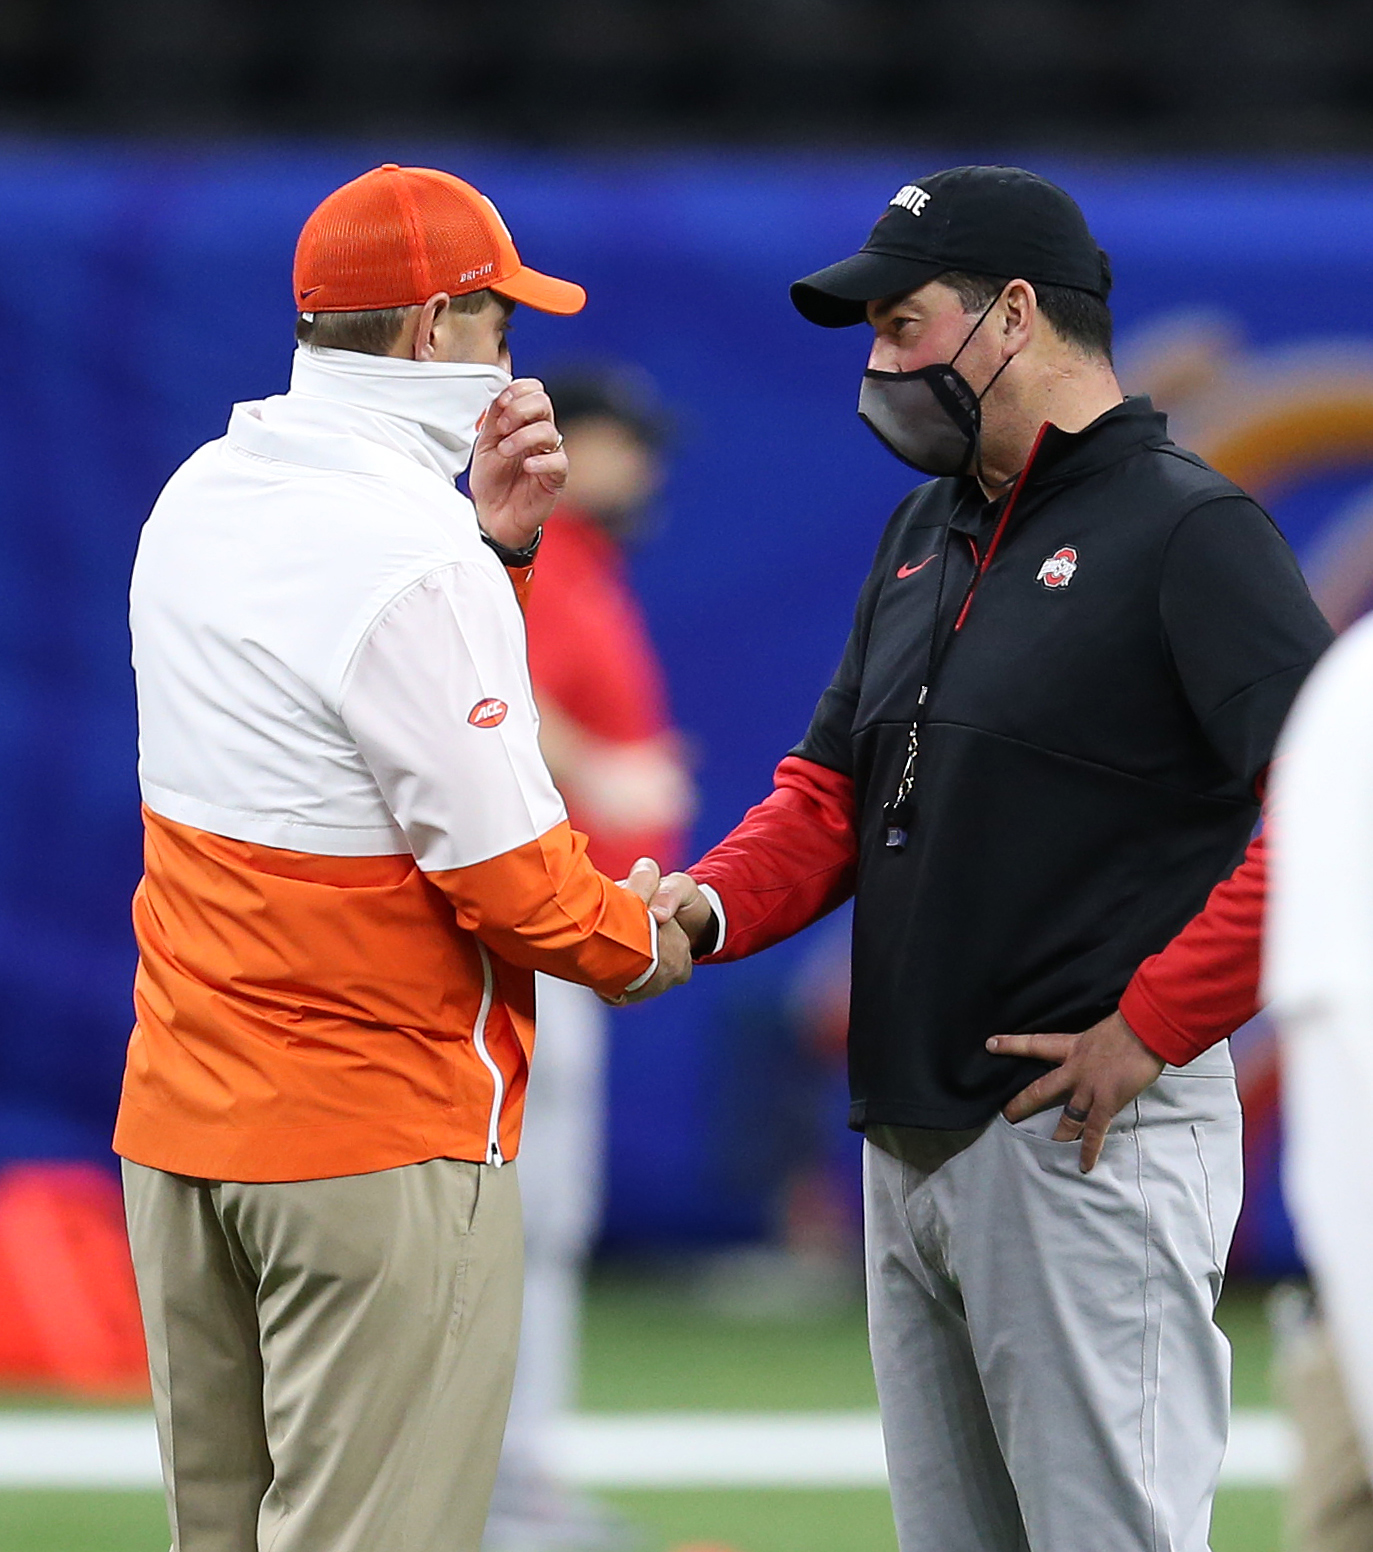 Clemson Tigers head coach Dabo Swinney meets with Ohio State Buckeyes head coach Ryan Day prior to the game at Mercedes-Benz Superdome.